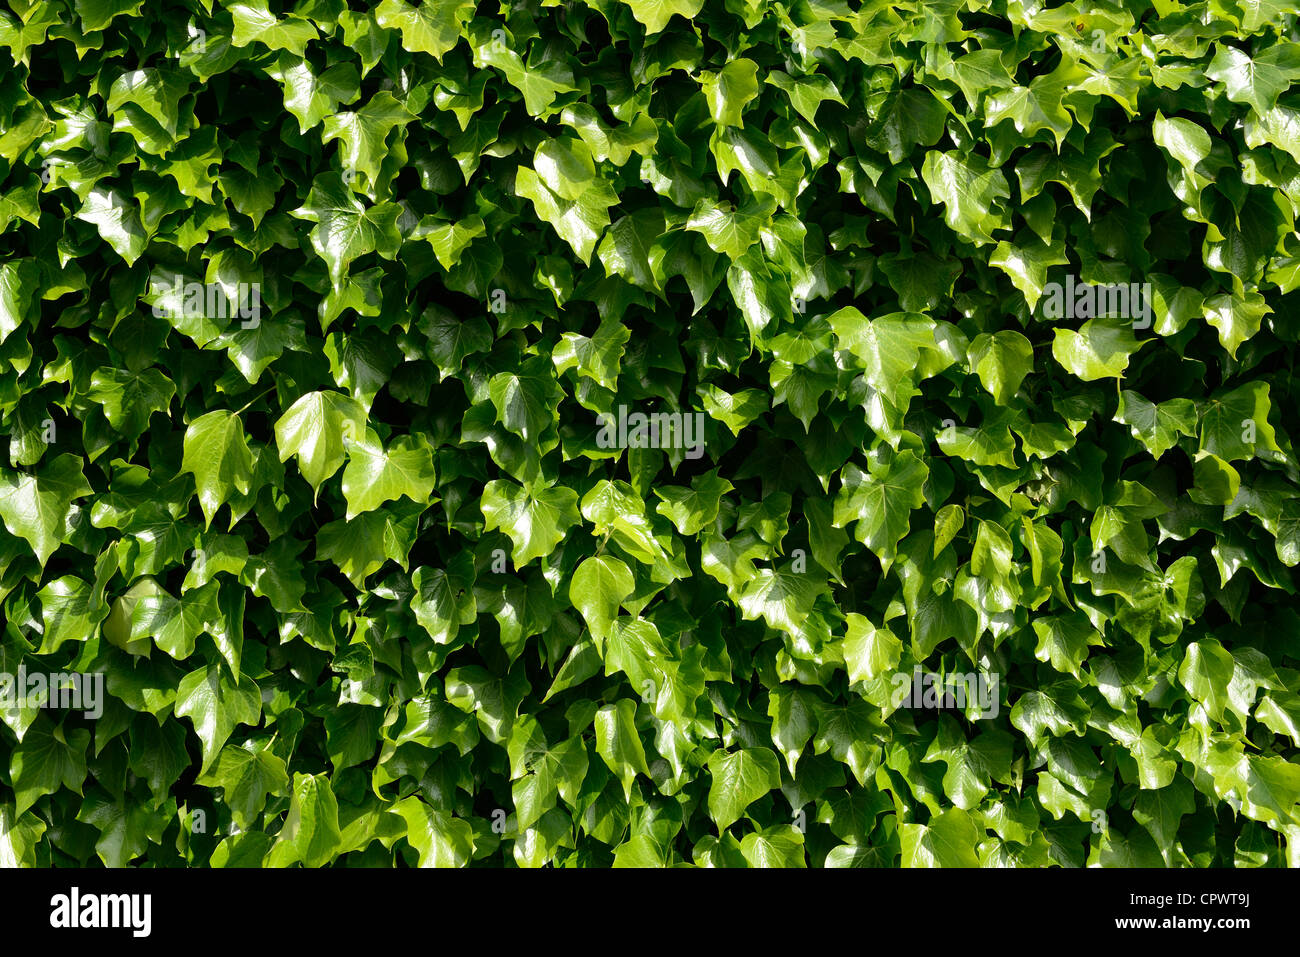 Wall of green ivy leaves - Stock Image